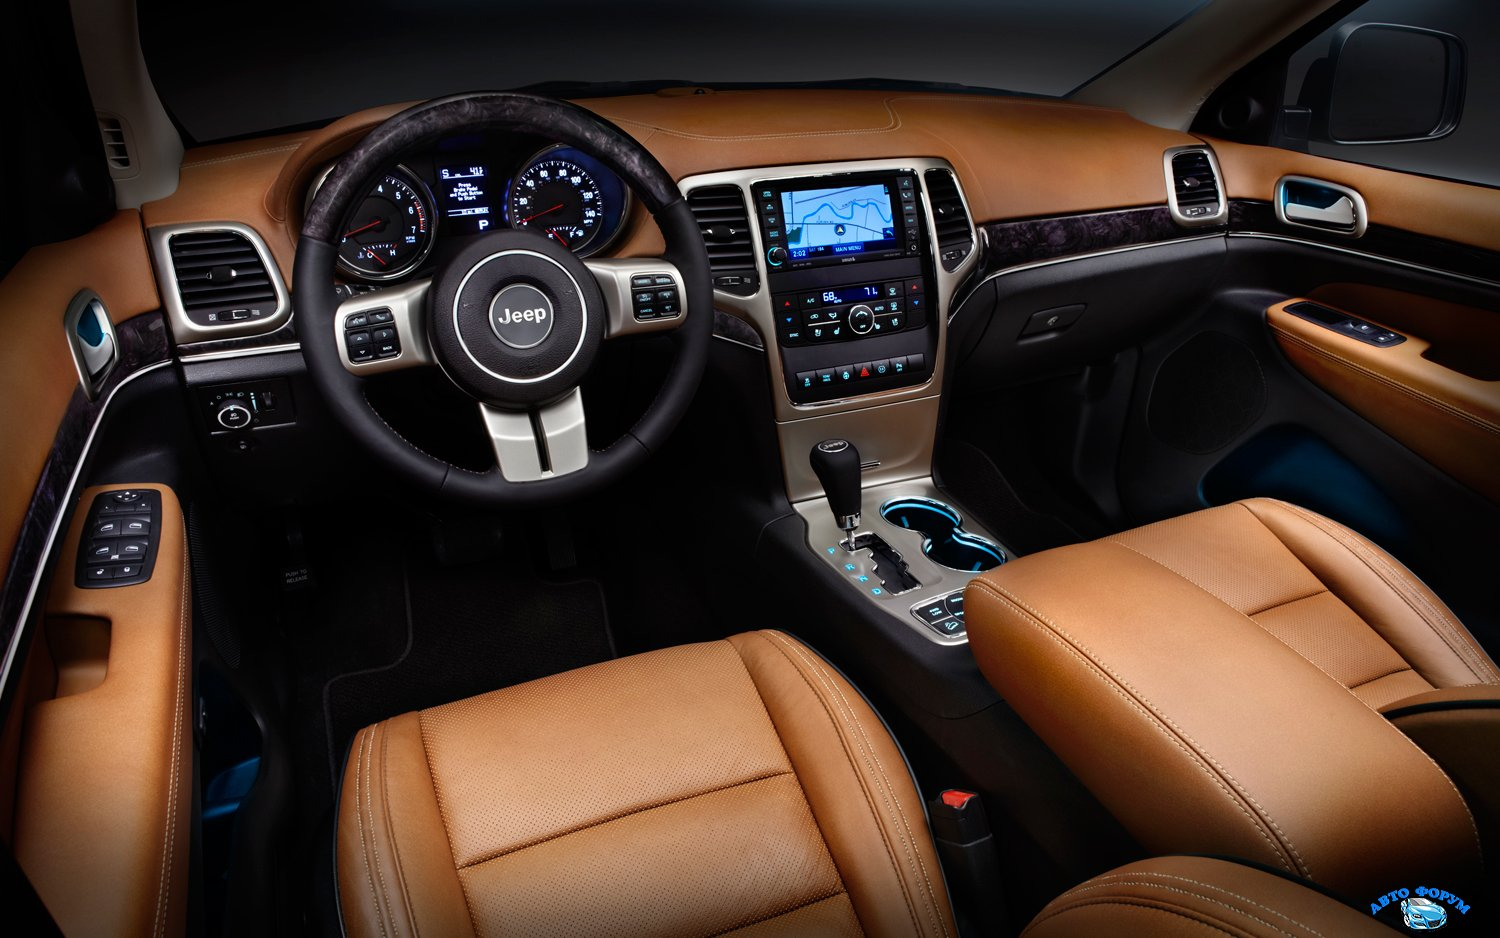 2012-jeep-grand-cherokee-front-interior.jpg